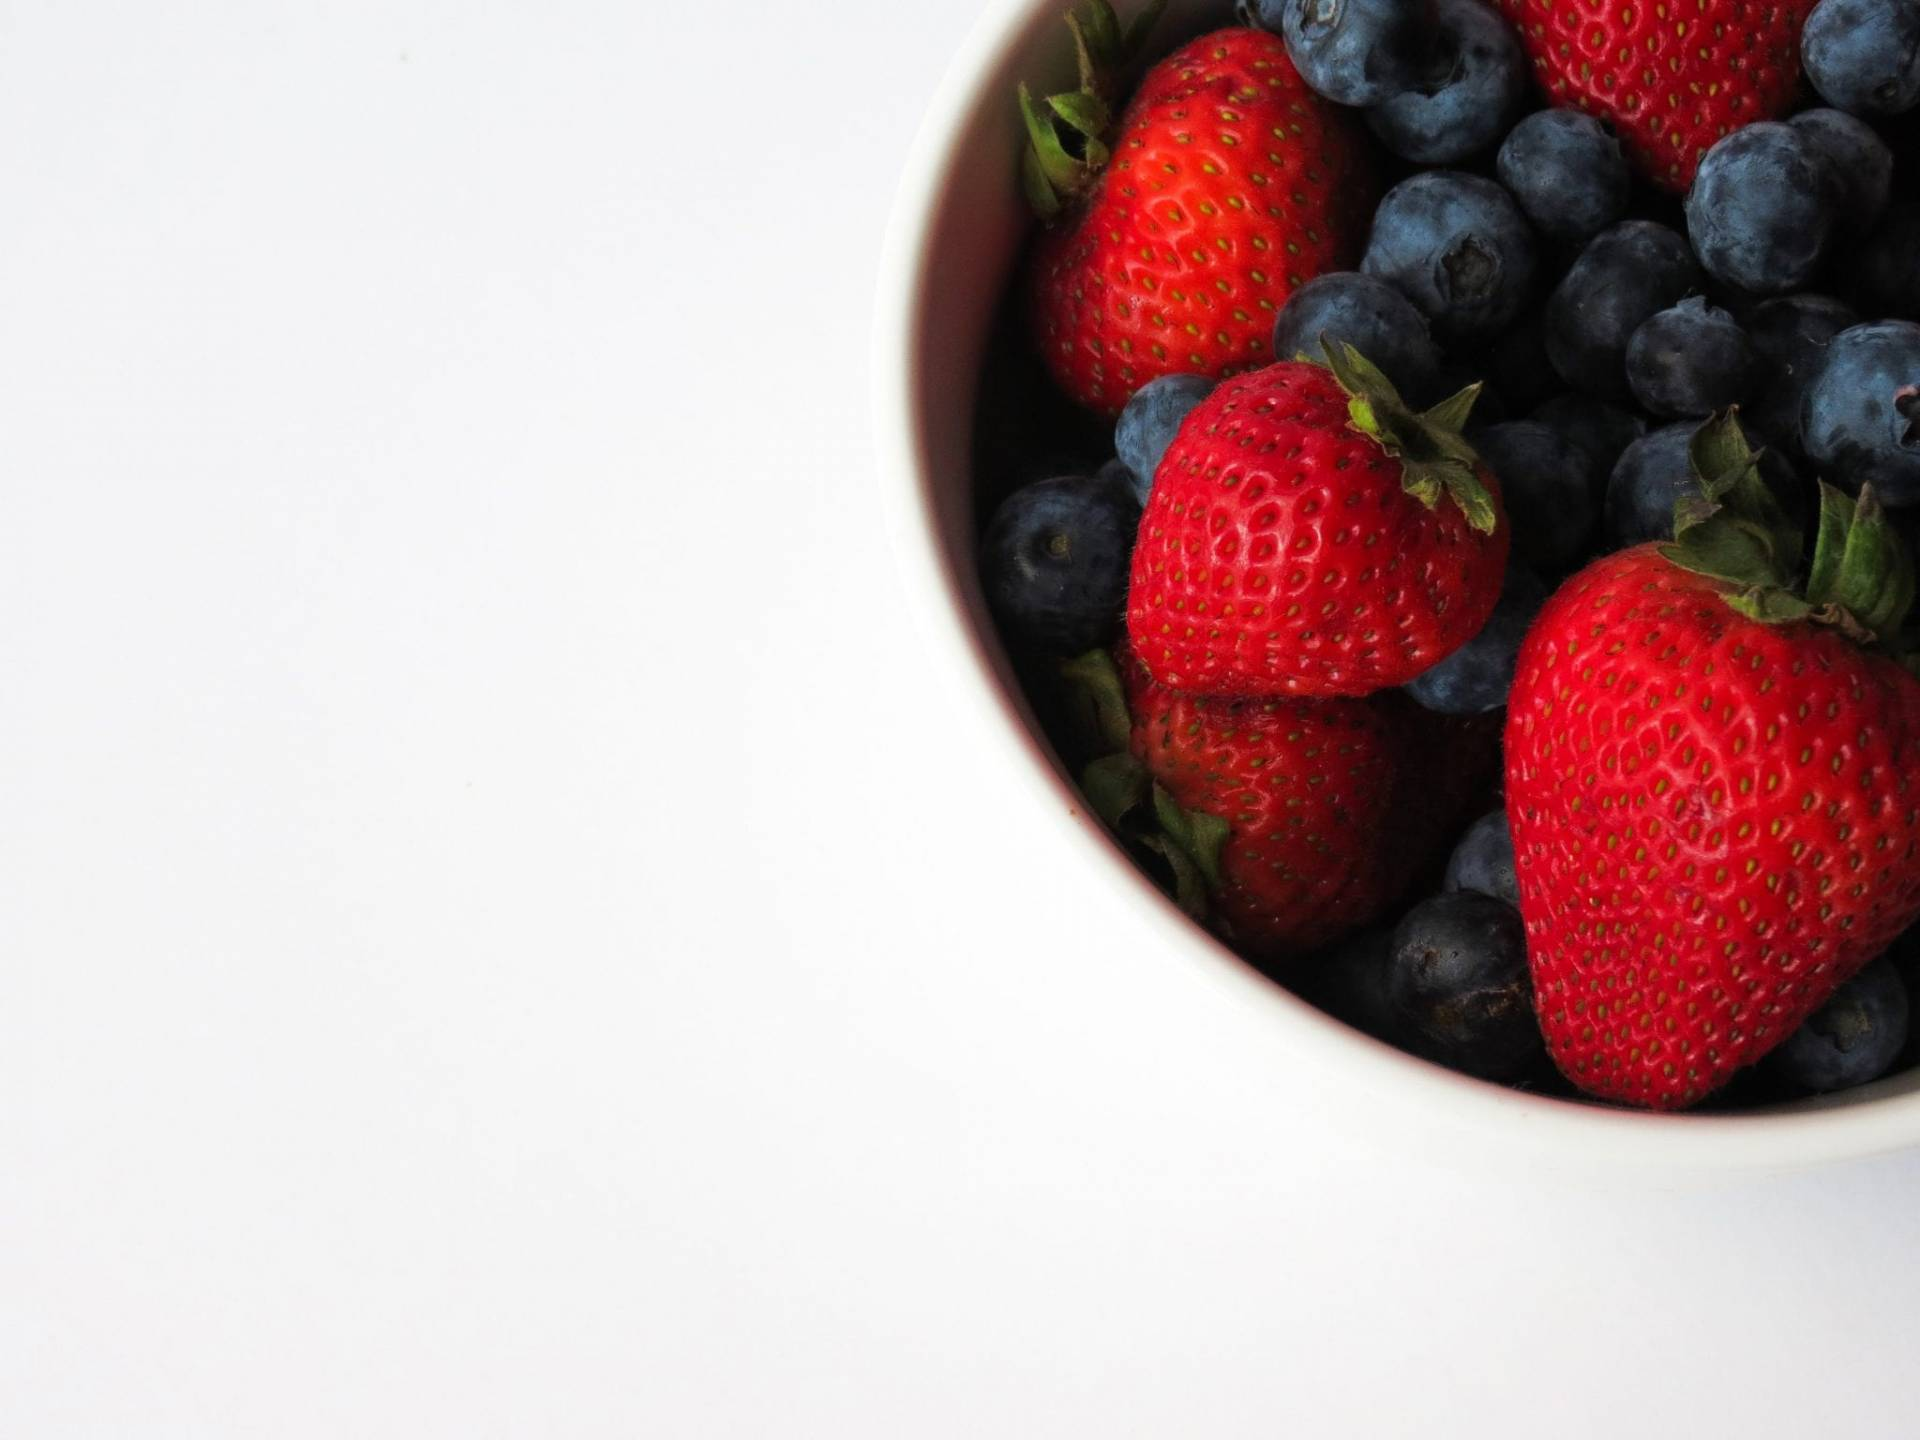 Berries make delicious office snacks